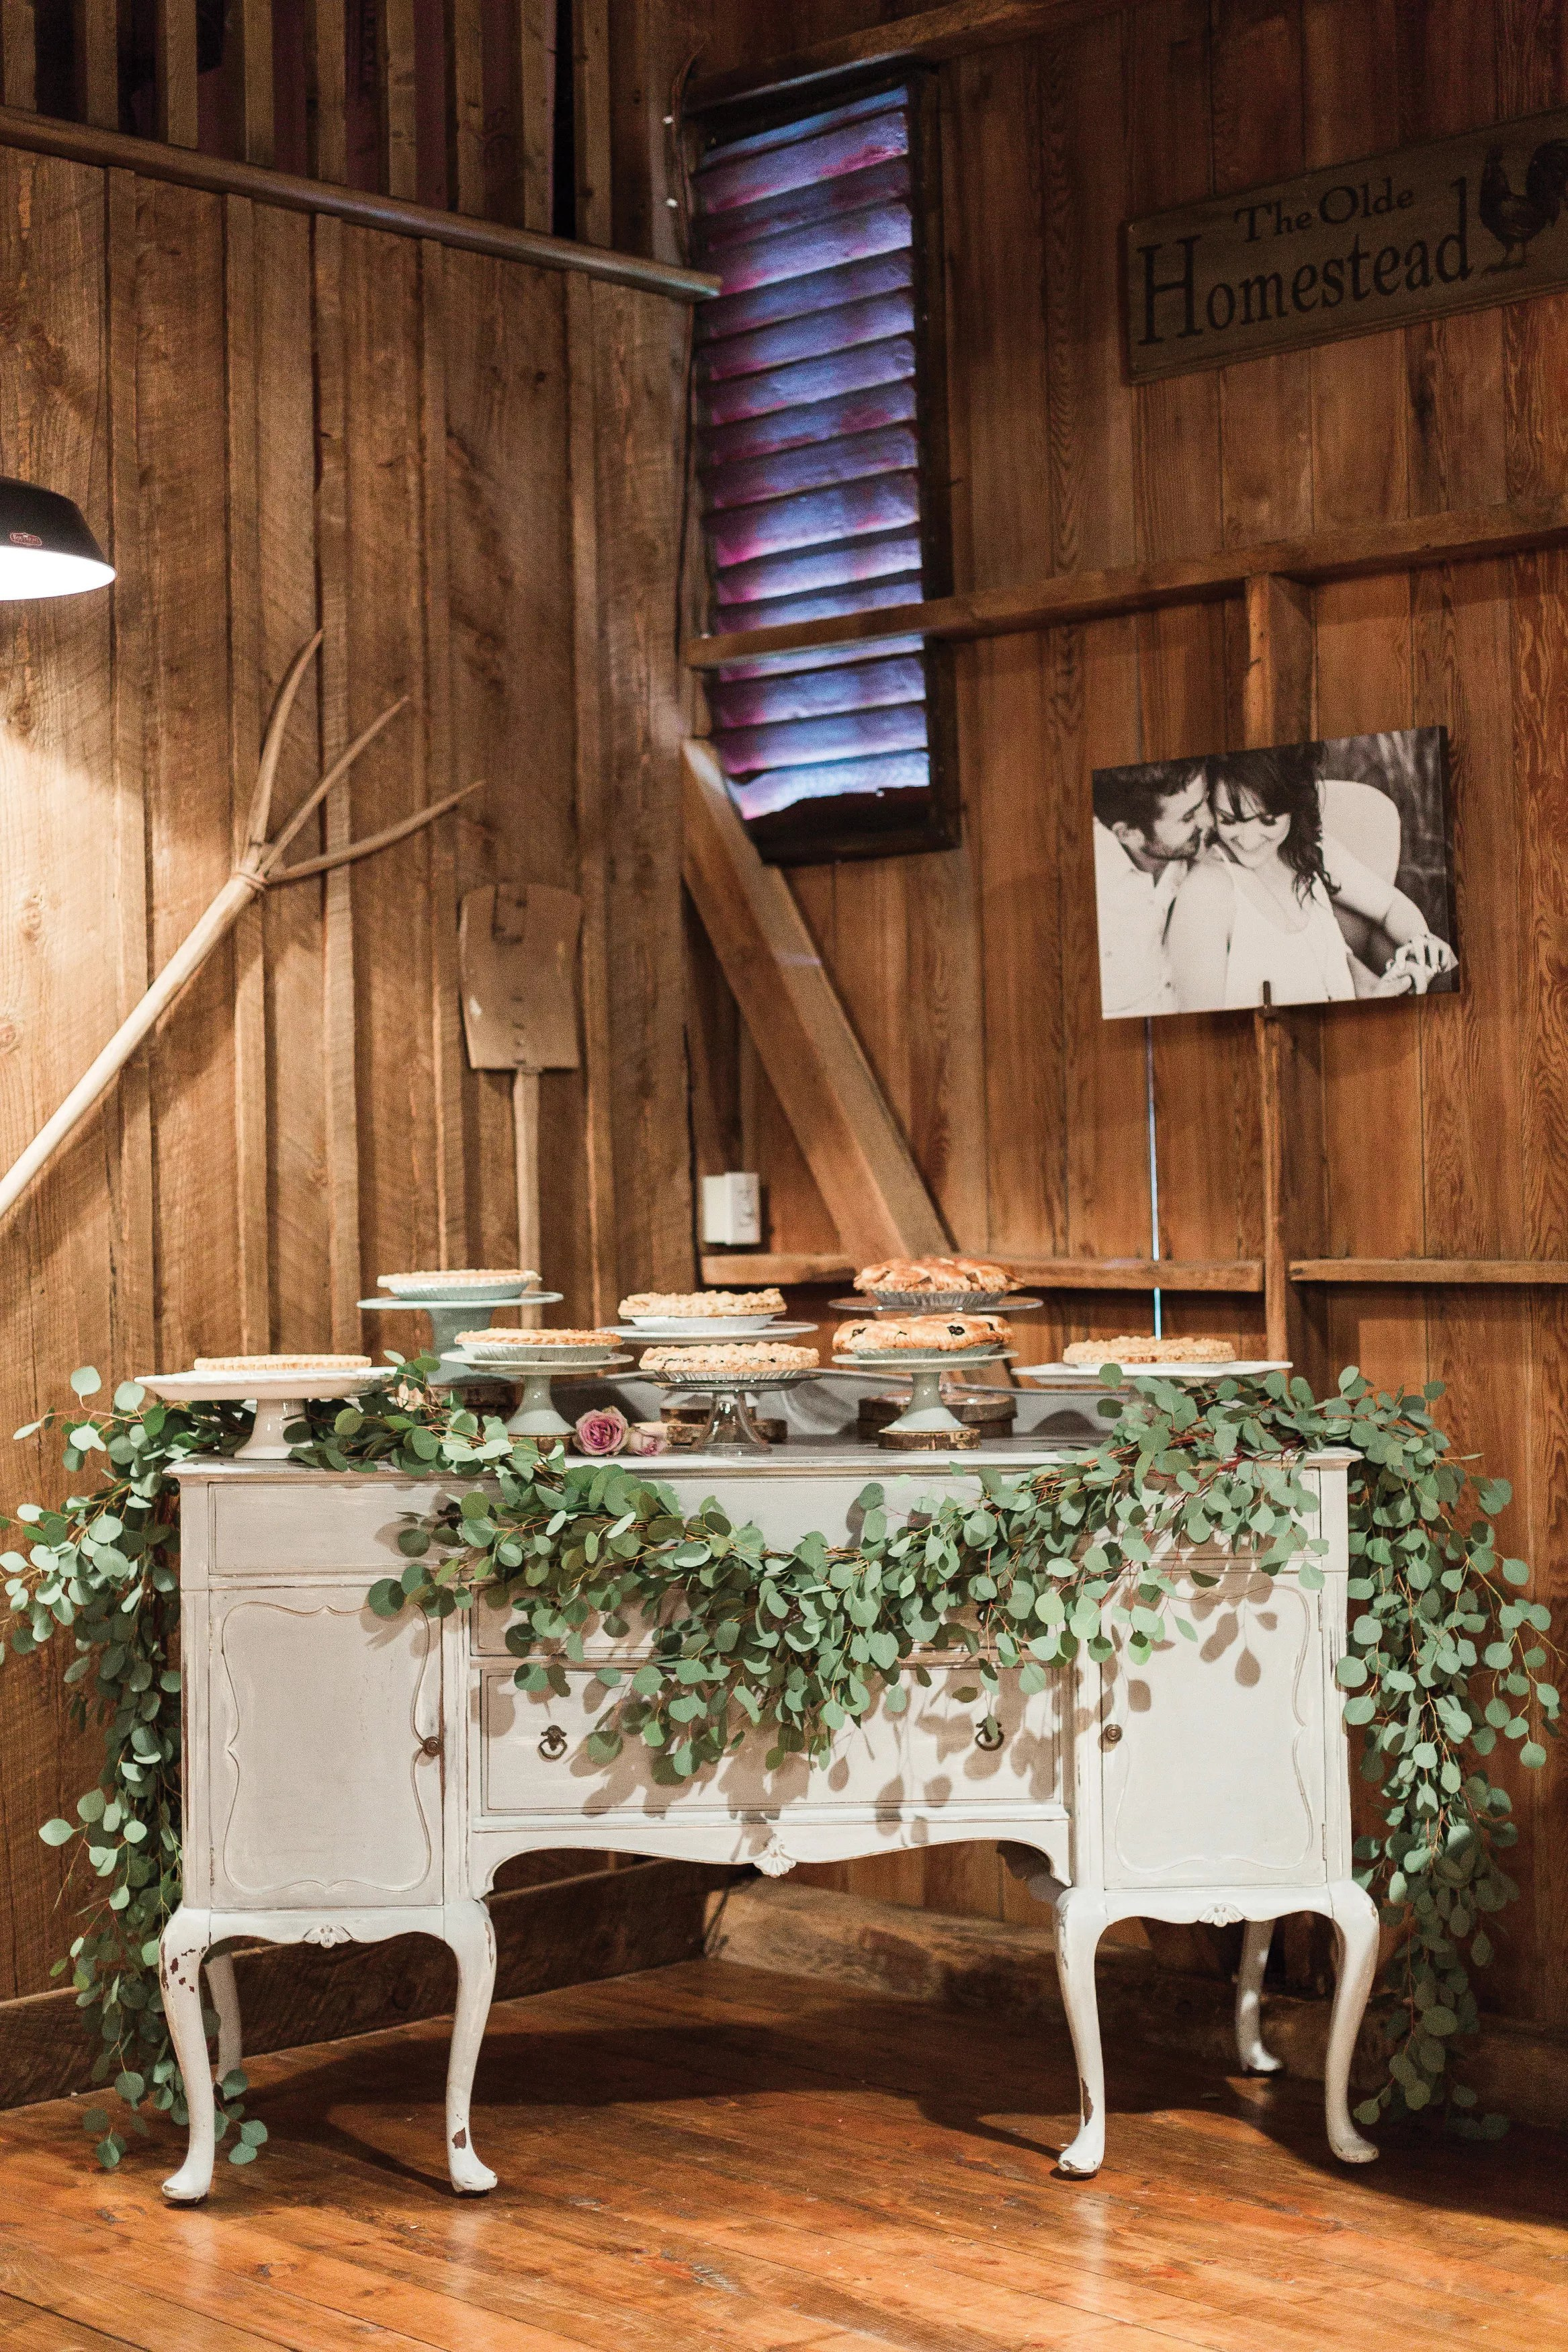 Vintage Pie Table With A Eucalyptus Garland